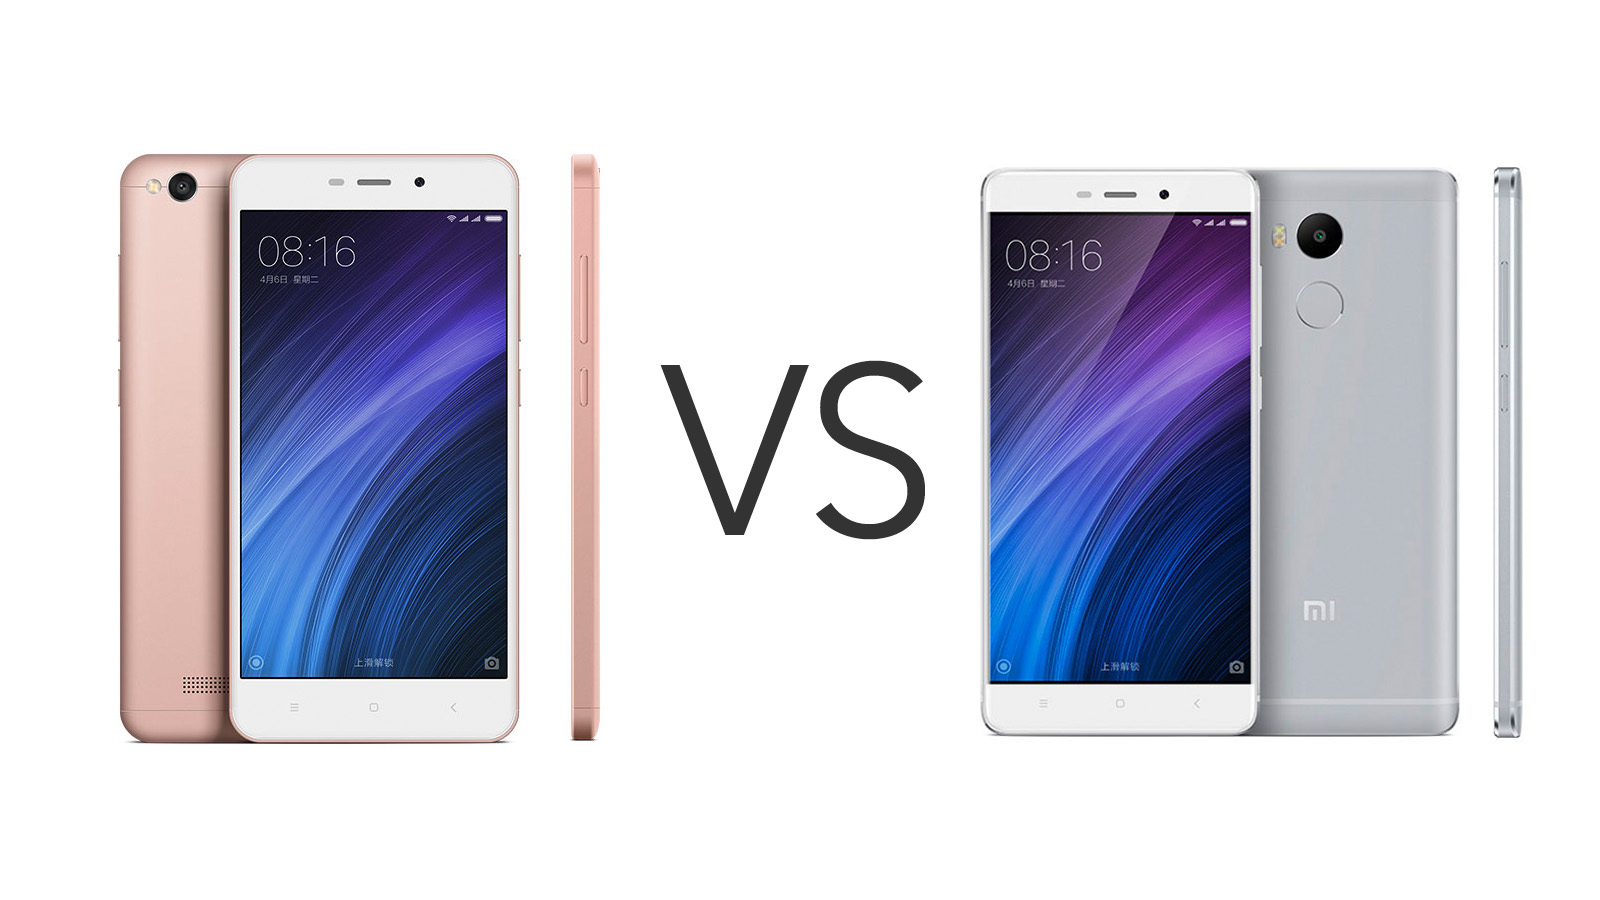 Xiaomi Redmi 4 vs 4A